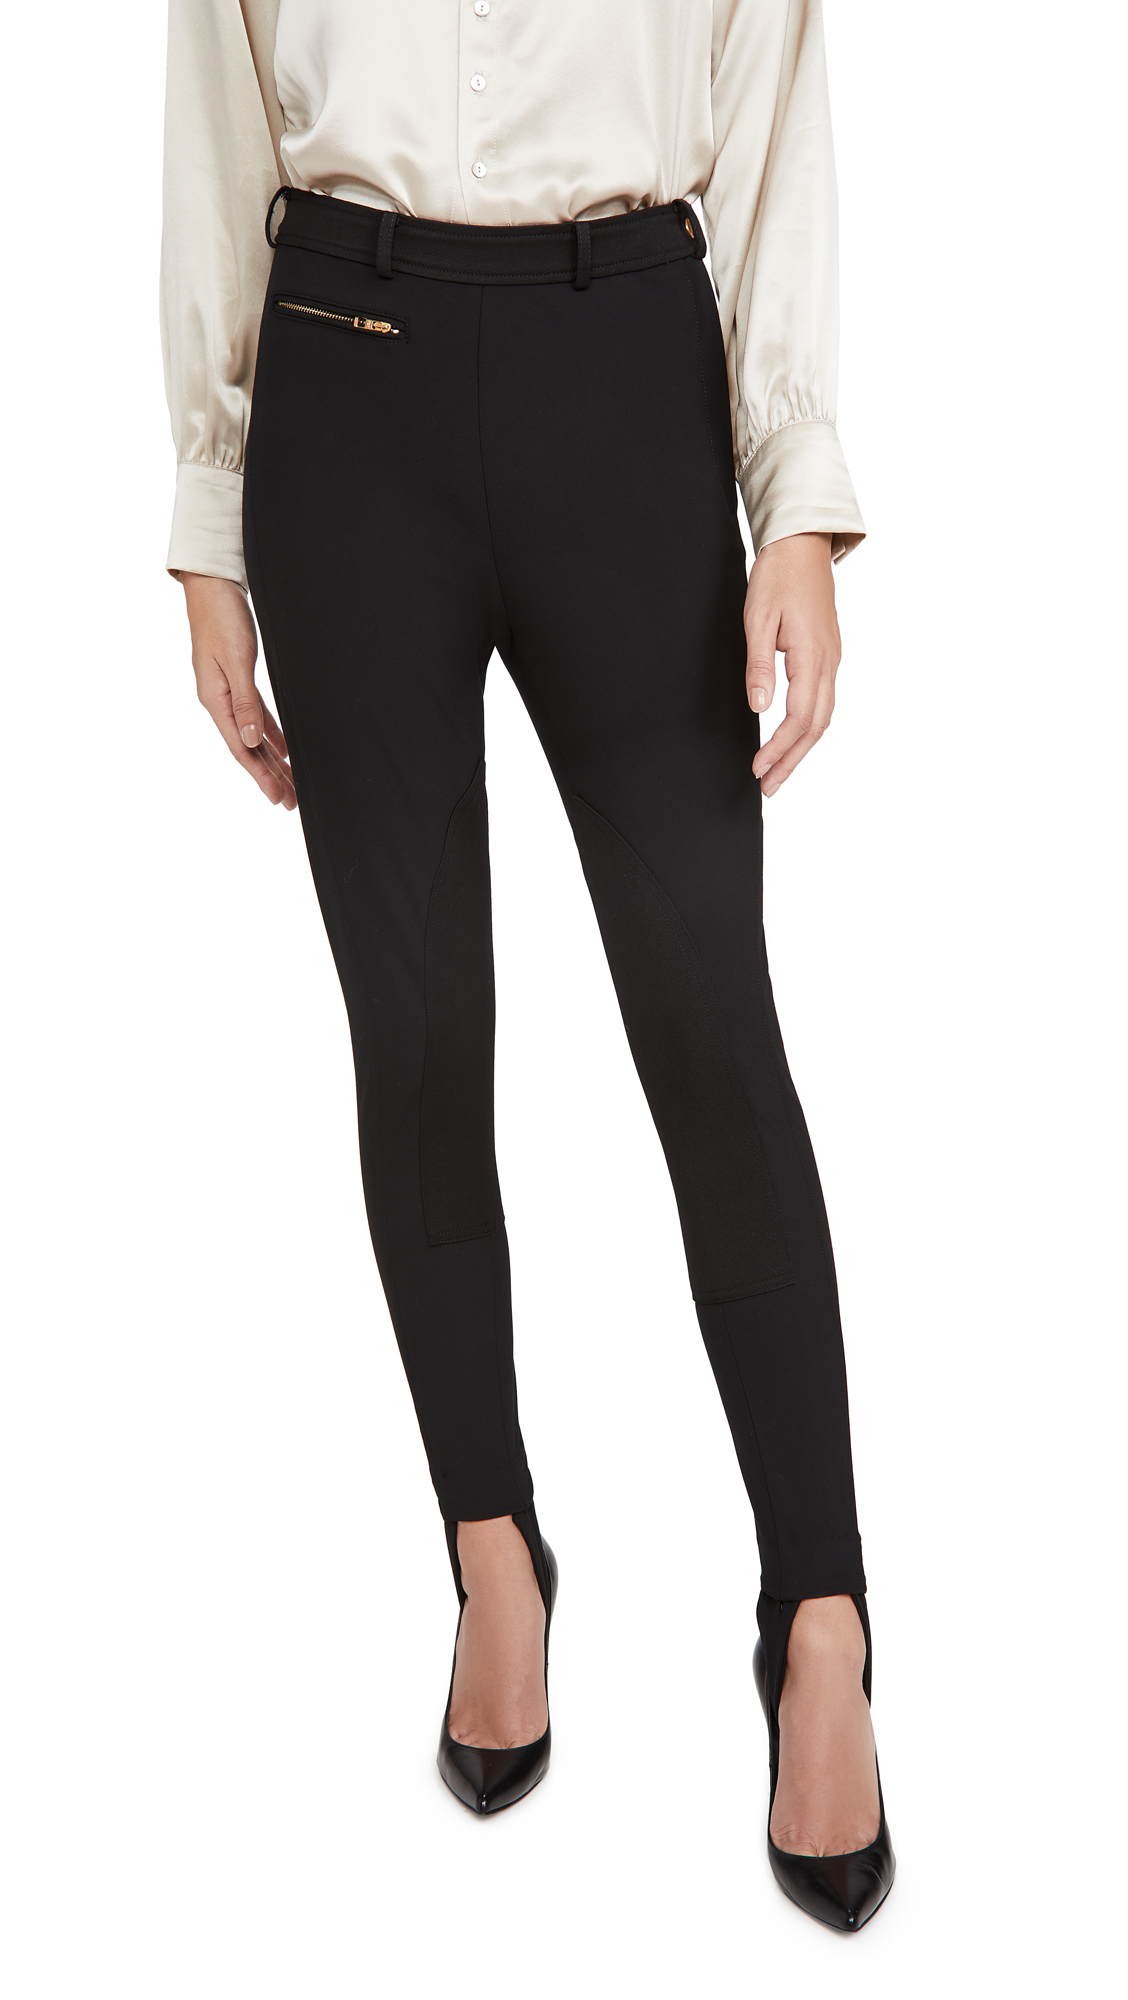 Tory Burch Riding Pants